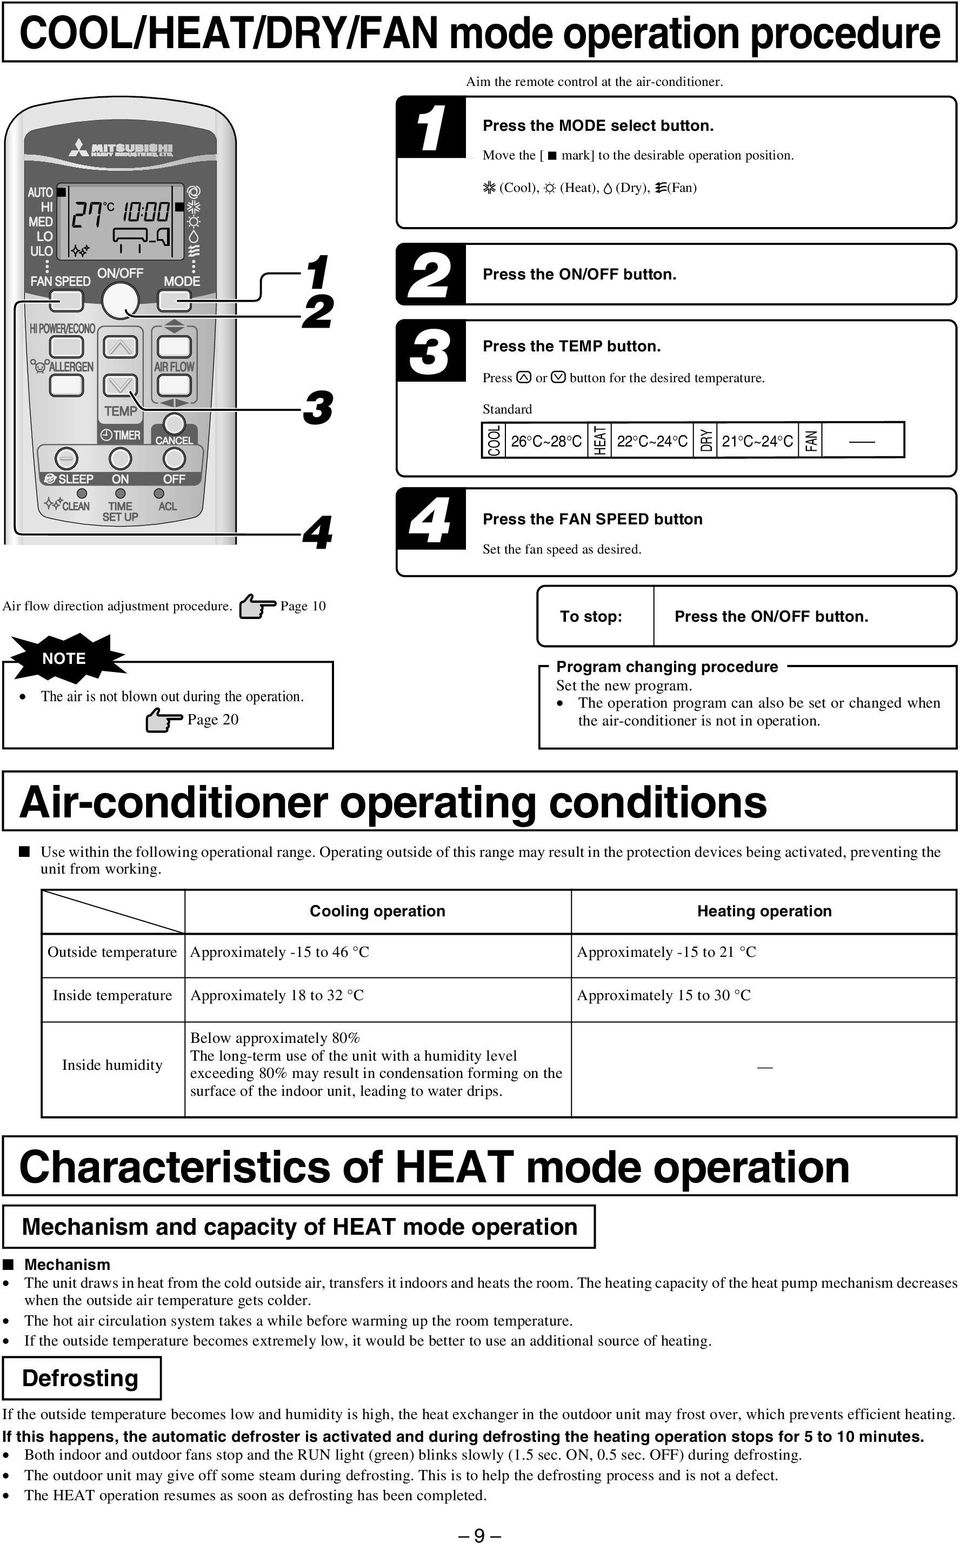 Standard COOL 26 C~28 C HEAT 22 C~24 C DRY Press the FAN SPEED button Set the fan speed as desired. 2 C~24 C FAN Air flow direction adjustment procedure. Page 0 To stop: Press the ON/OFF button.